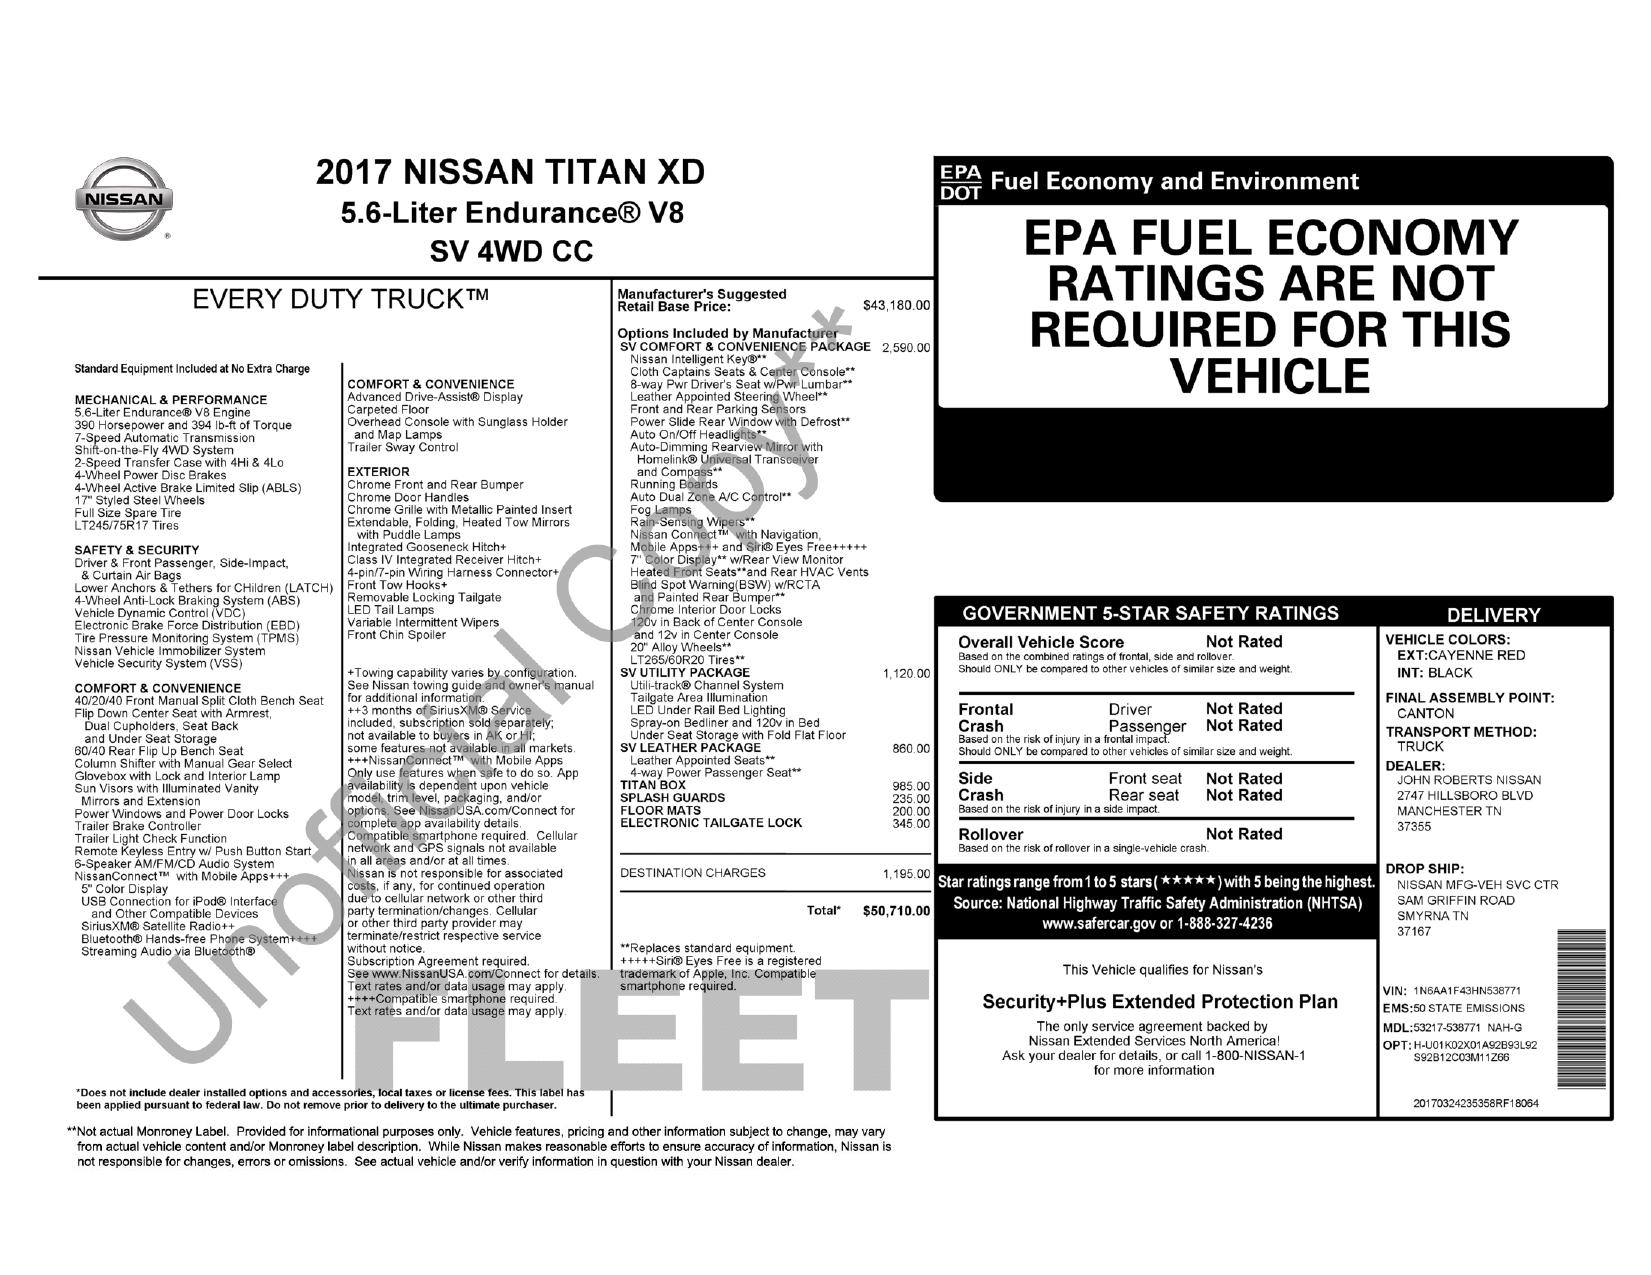 Window Sticker For 2017 Nissan Titan Xd 7 Pin Trailer Wiring